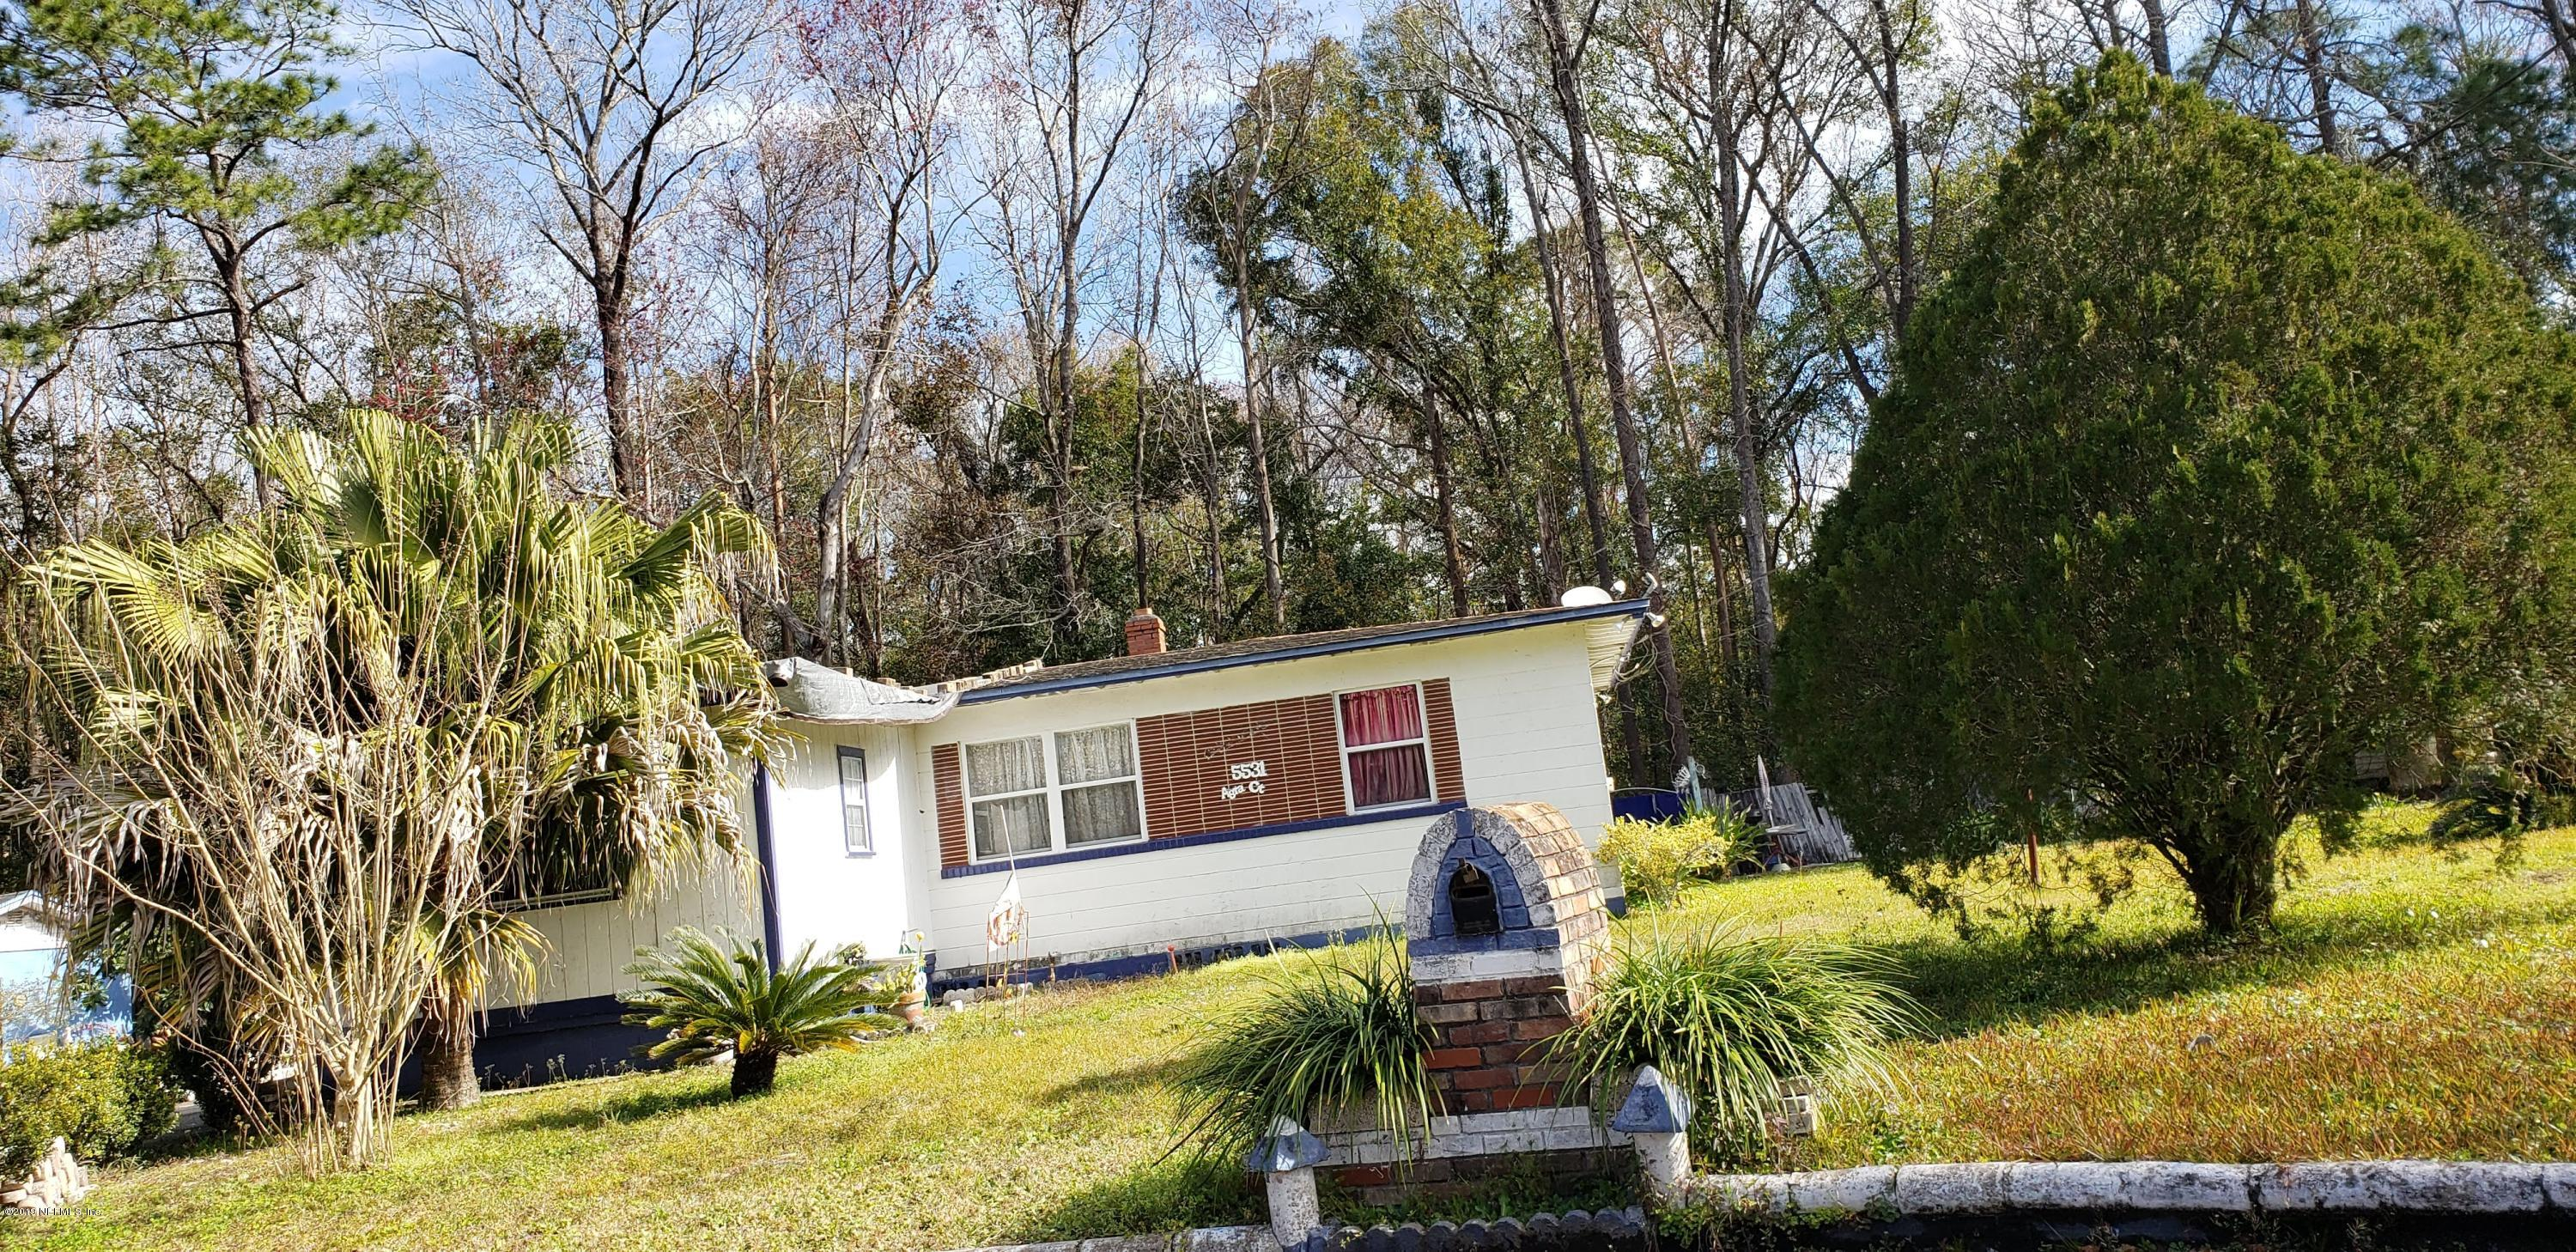 5531 AGRA, JACKSONVILLE, FLORIDA 32209, 3 Bedrooms Bedrooms, ,1 BathroomBathrooms,Residential - single family,For sale,AGRA,985608